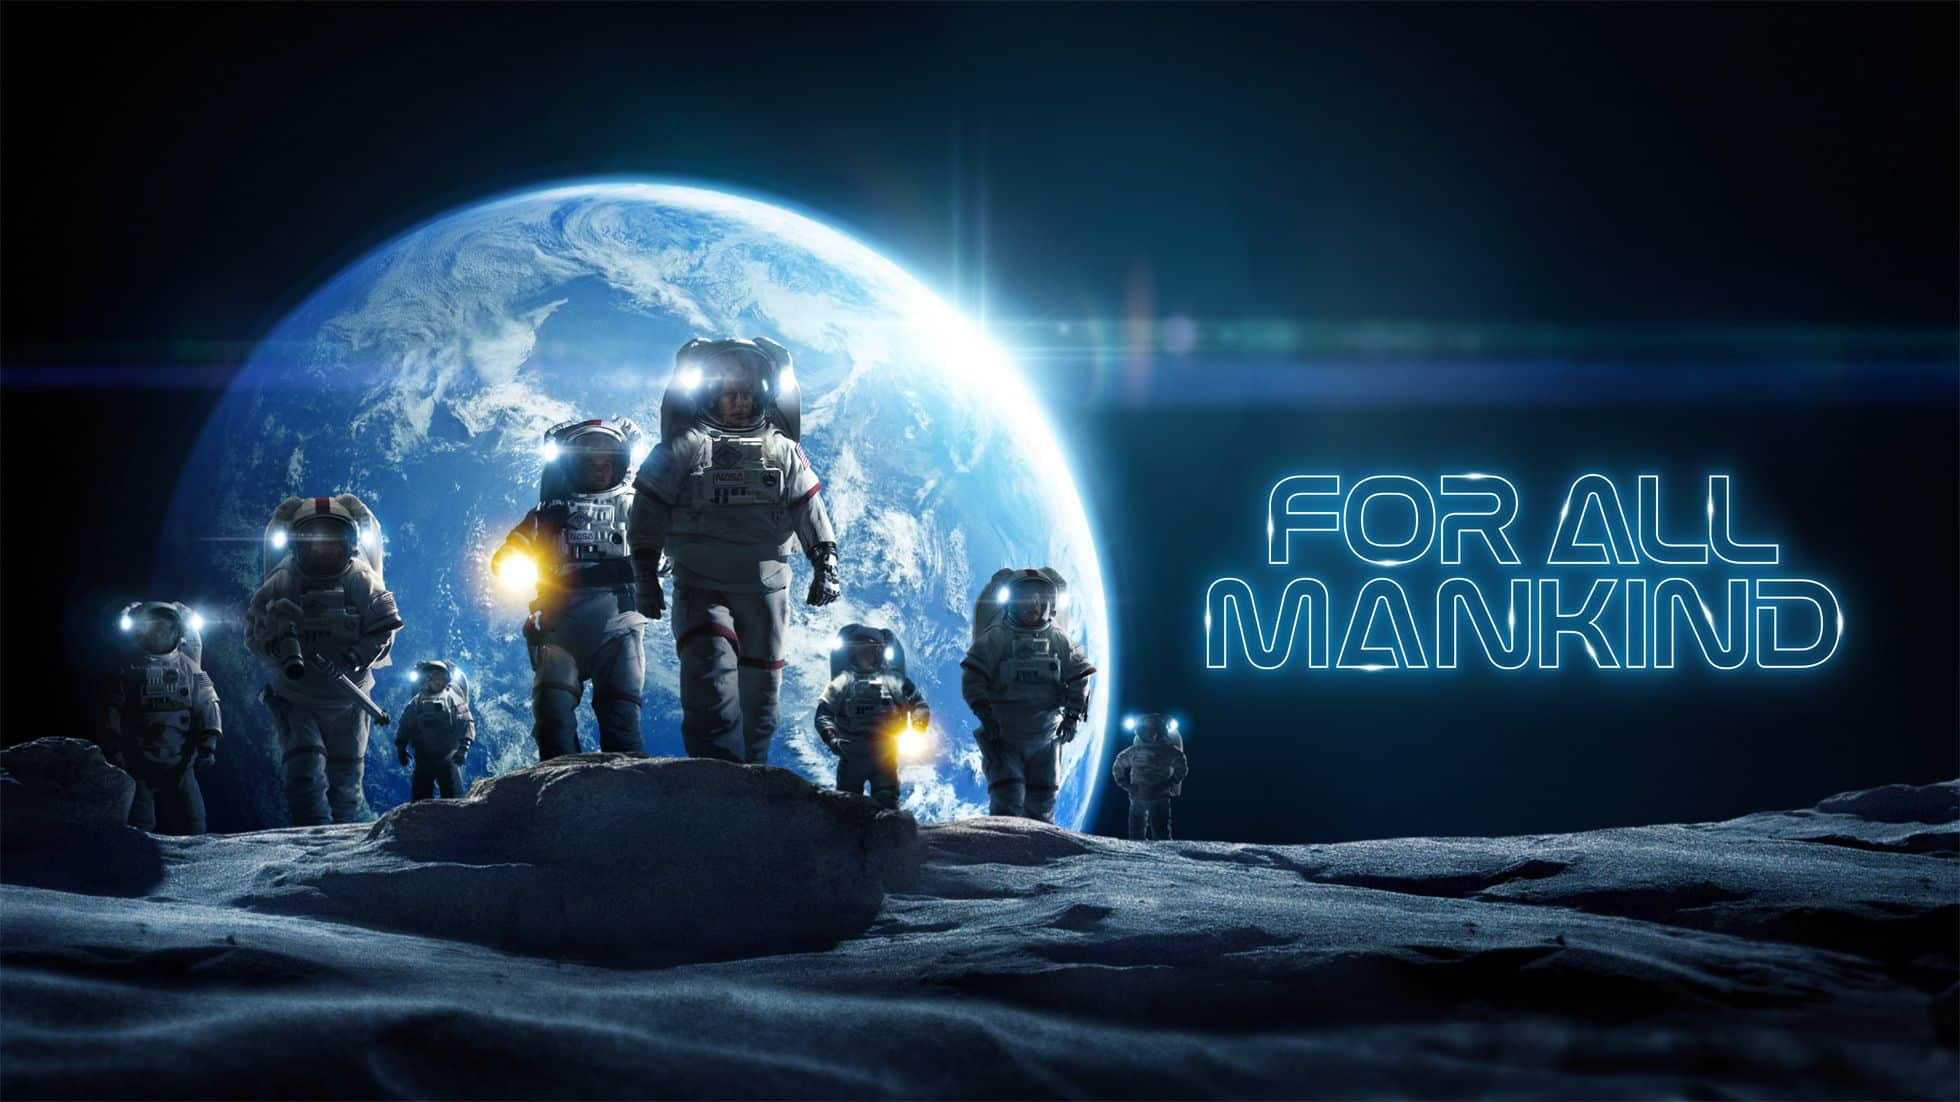 For All Mankind season 2 is now streaming on Apple TV+